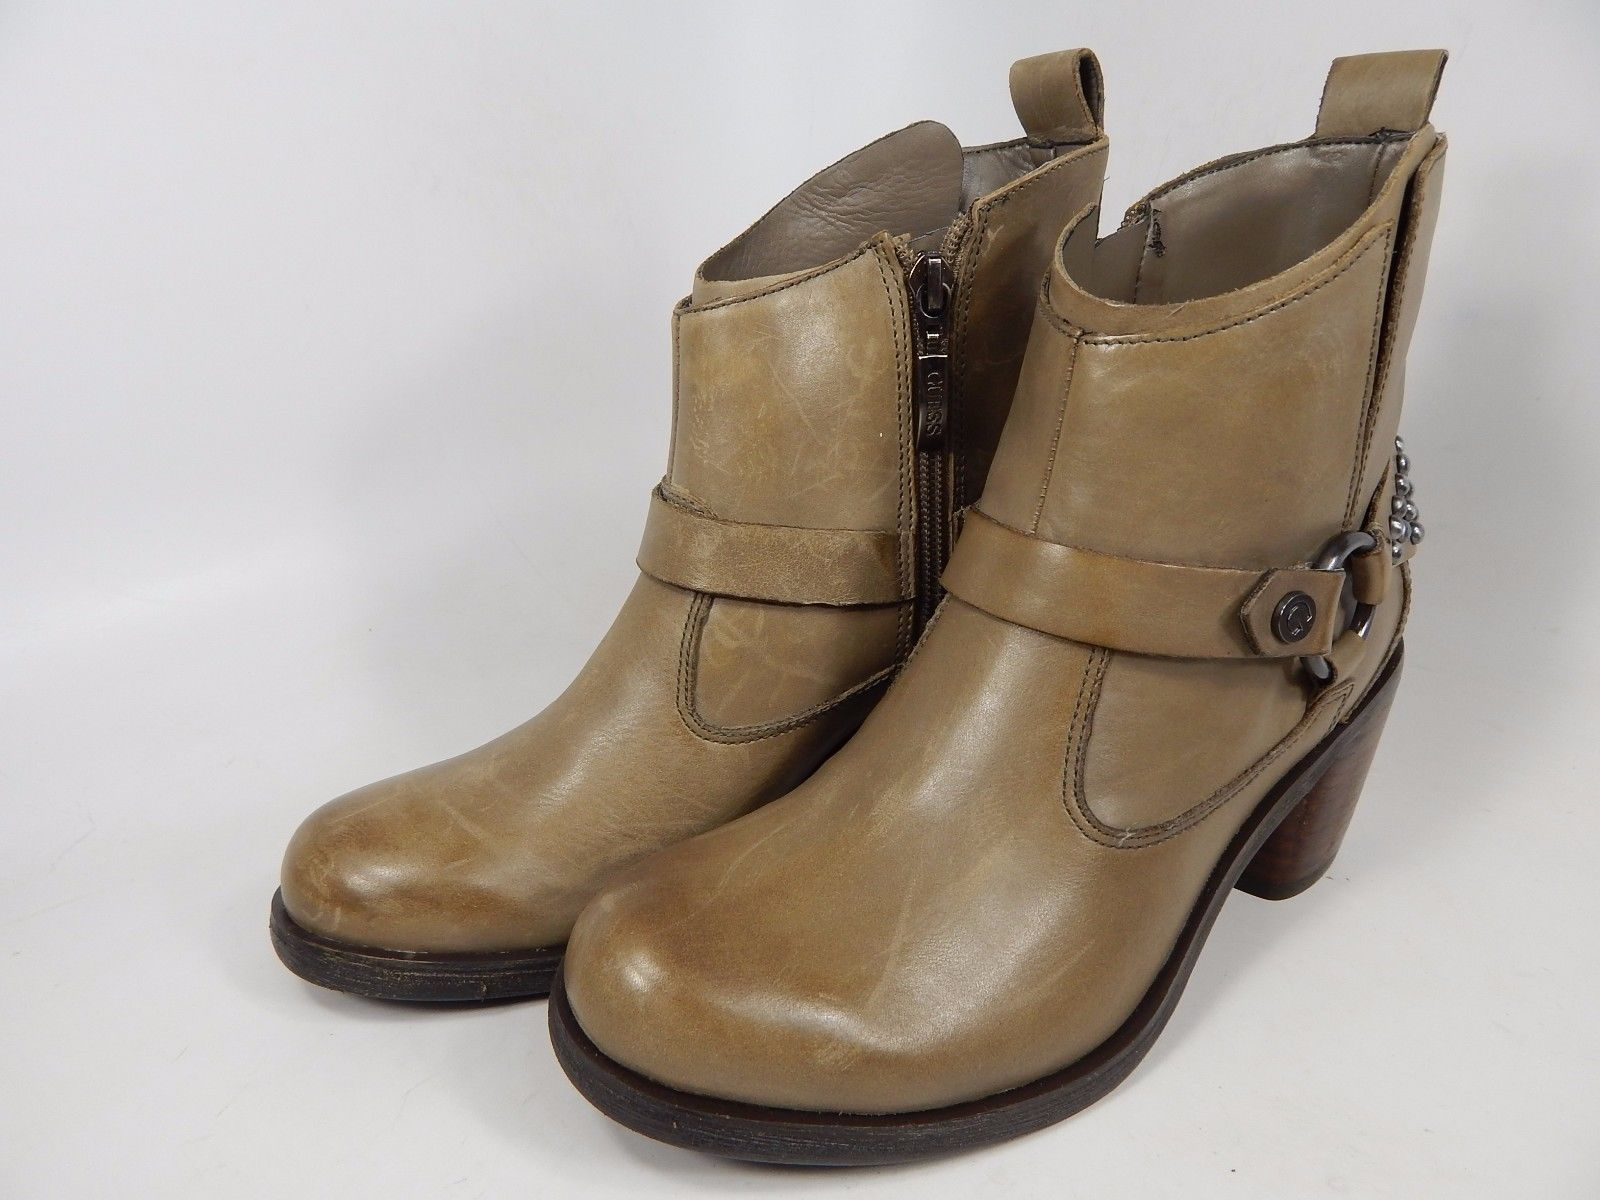 Guess Morelli Ankle Boots Women's Size US 6 M (B) Brown $159